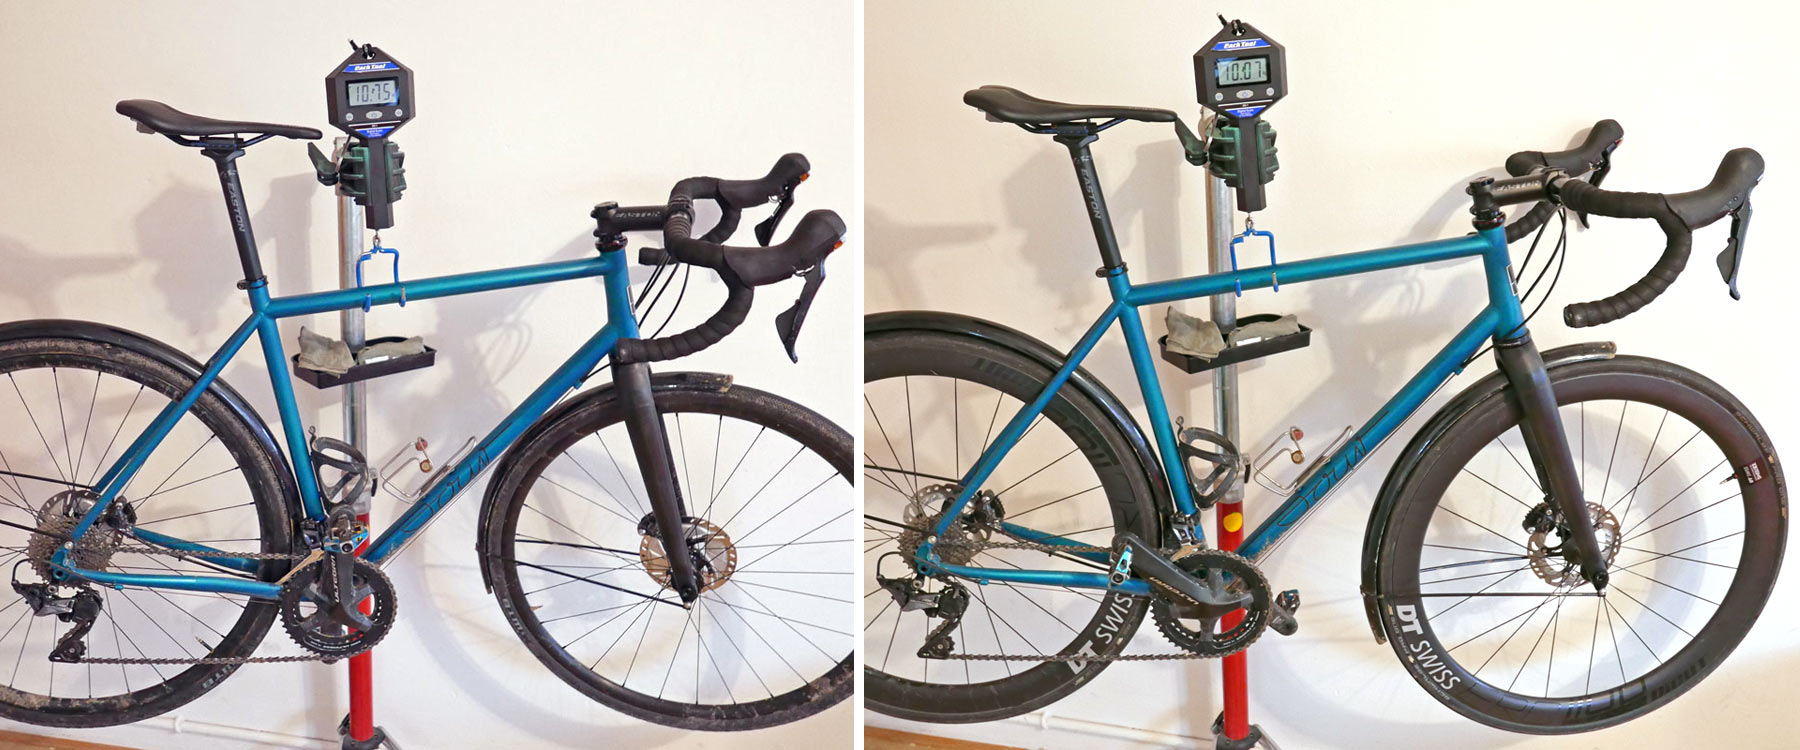 Ride Sour Clueless all road bike, affordable modern steel disc brake adaptable endurance all road bike actual weights